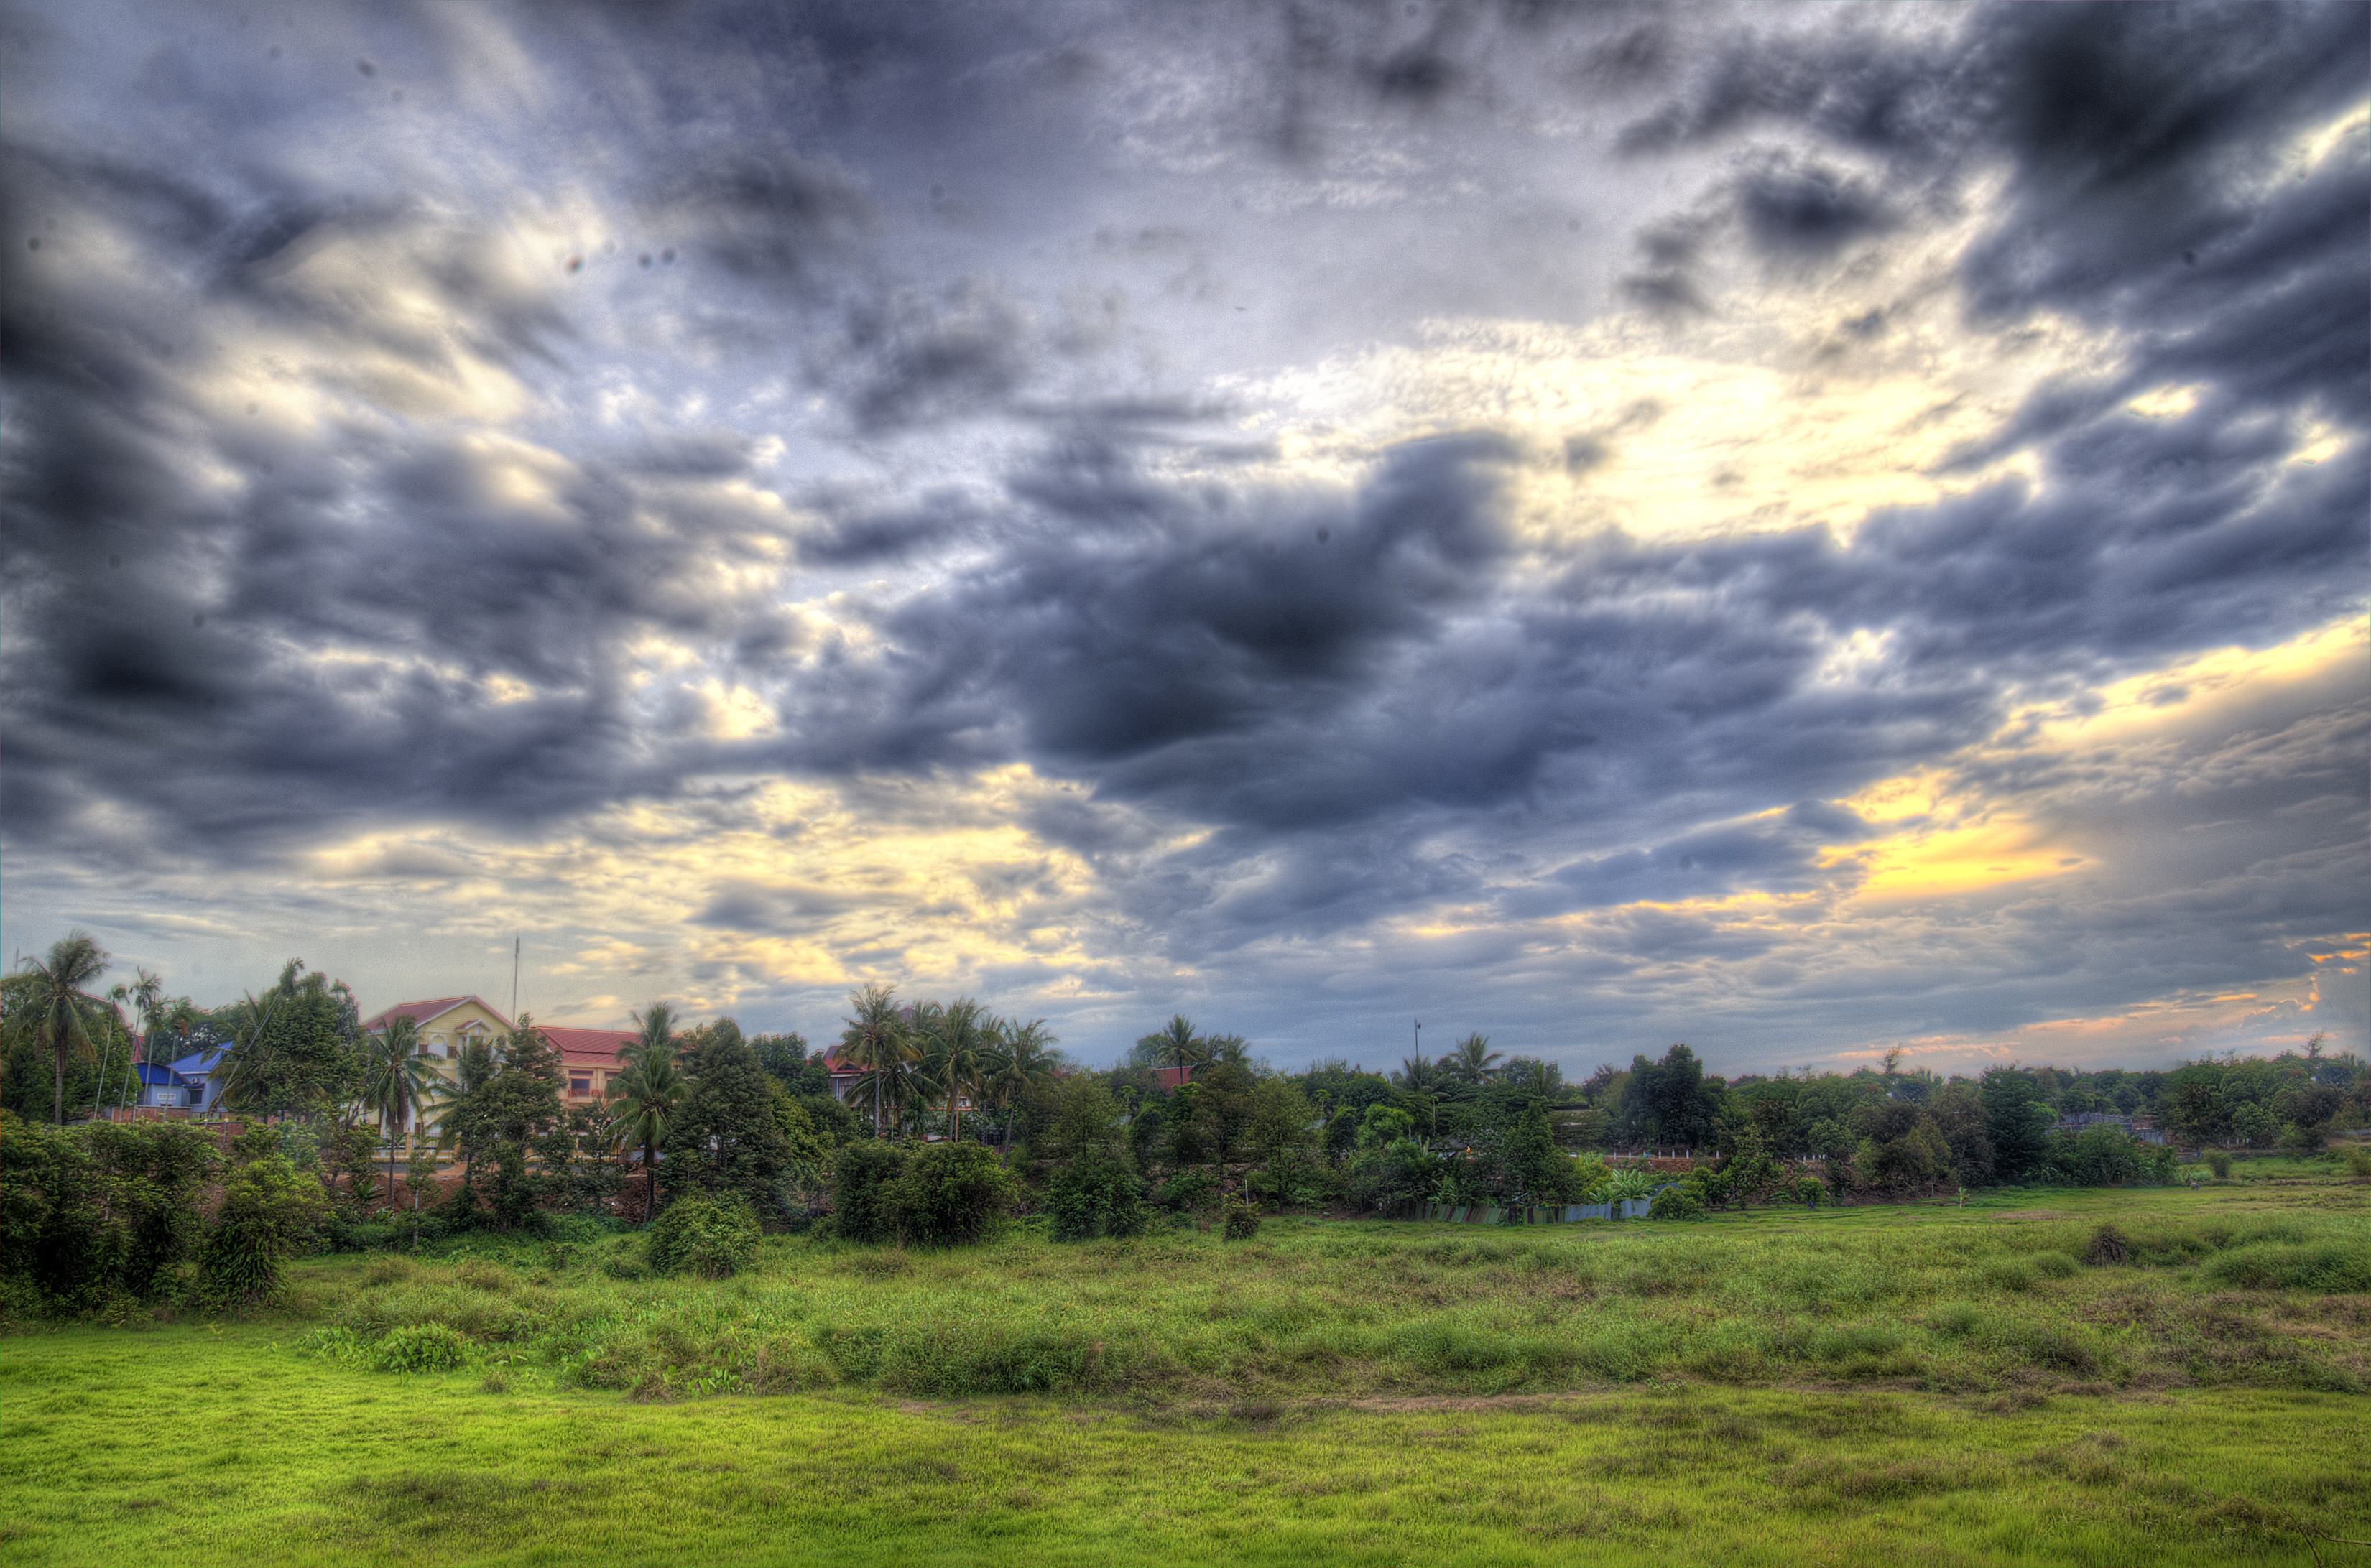 evening clouds in Banlung